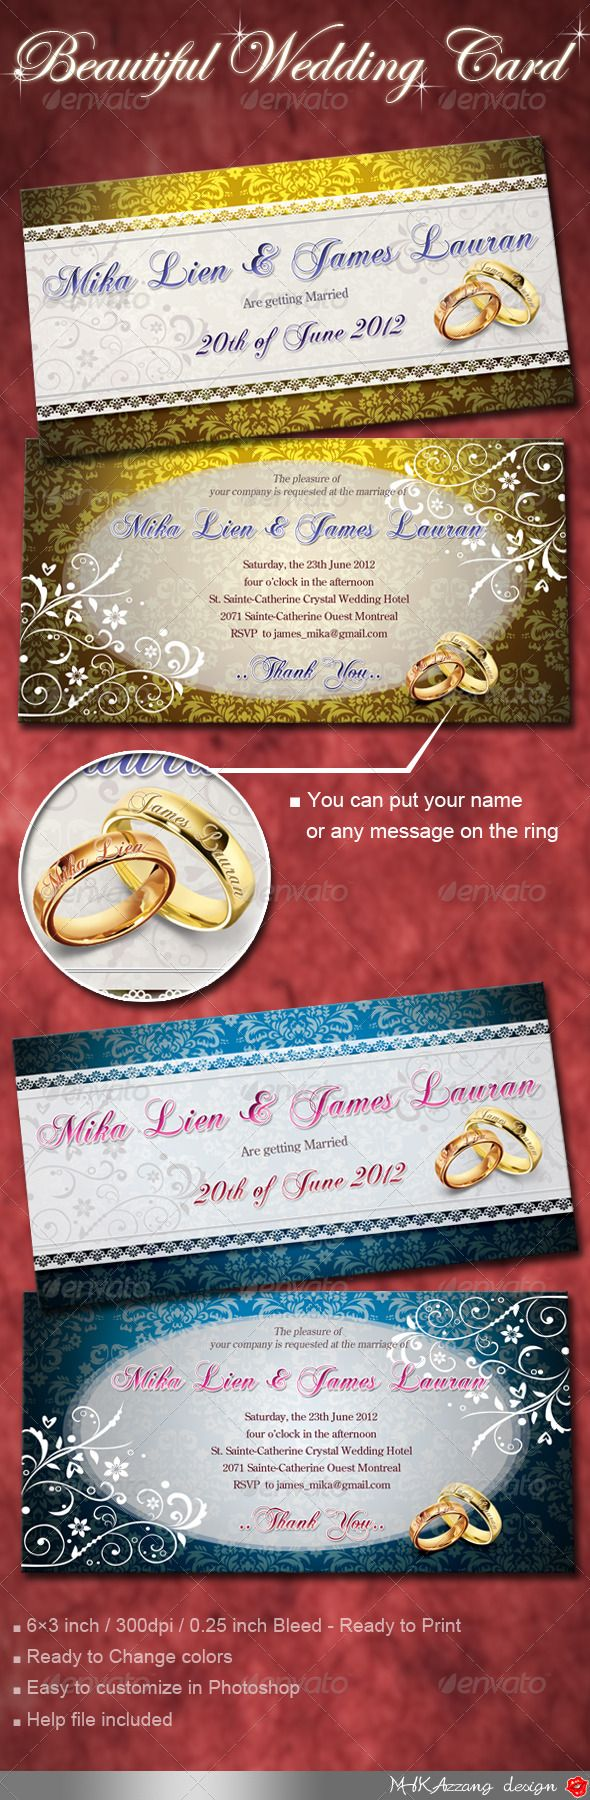 227 best Wedding Invitation Card Templates images on Pinterest ...